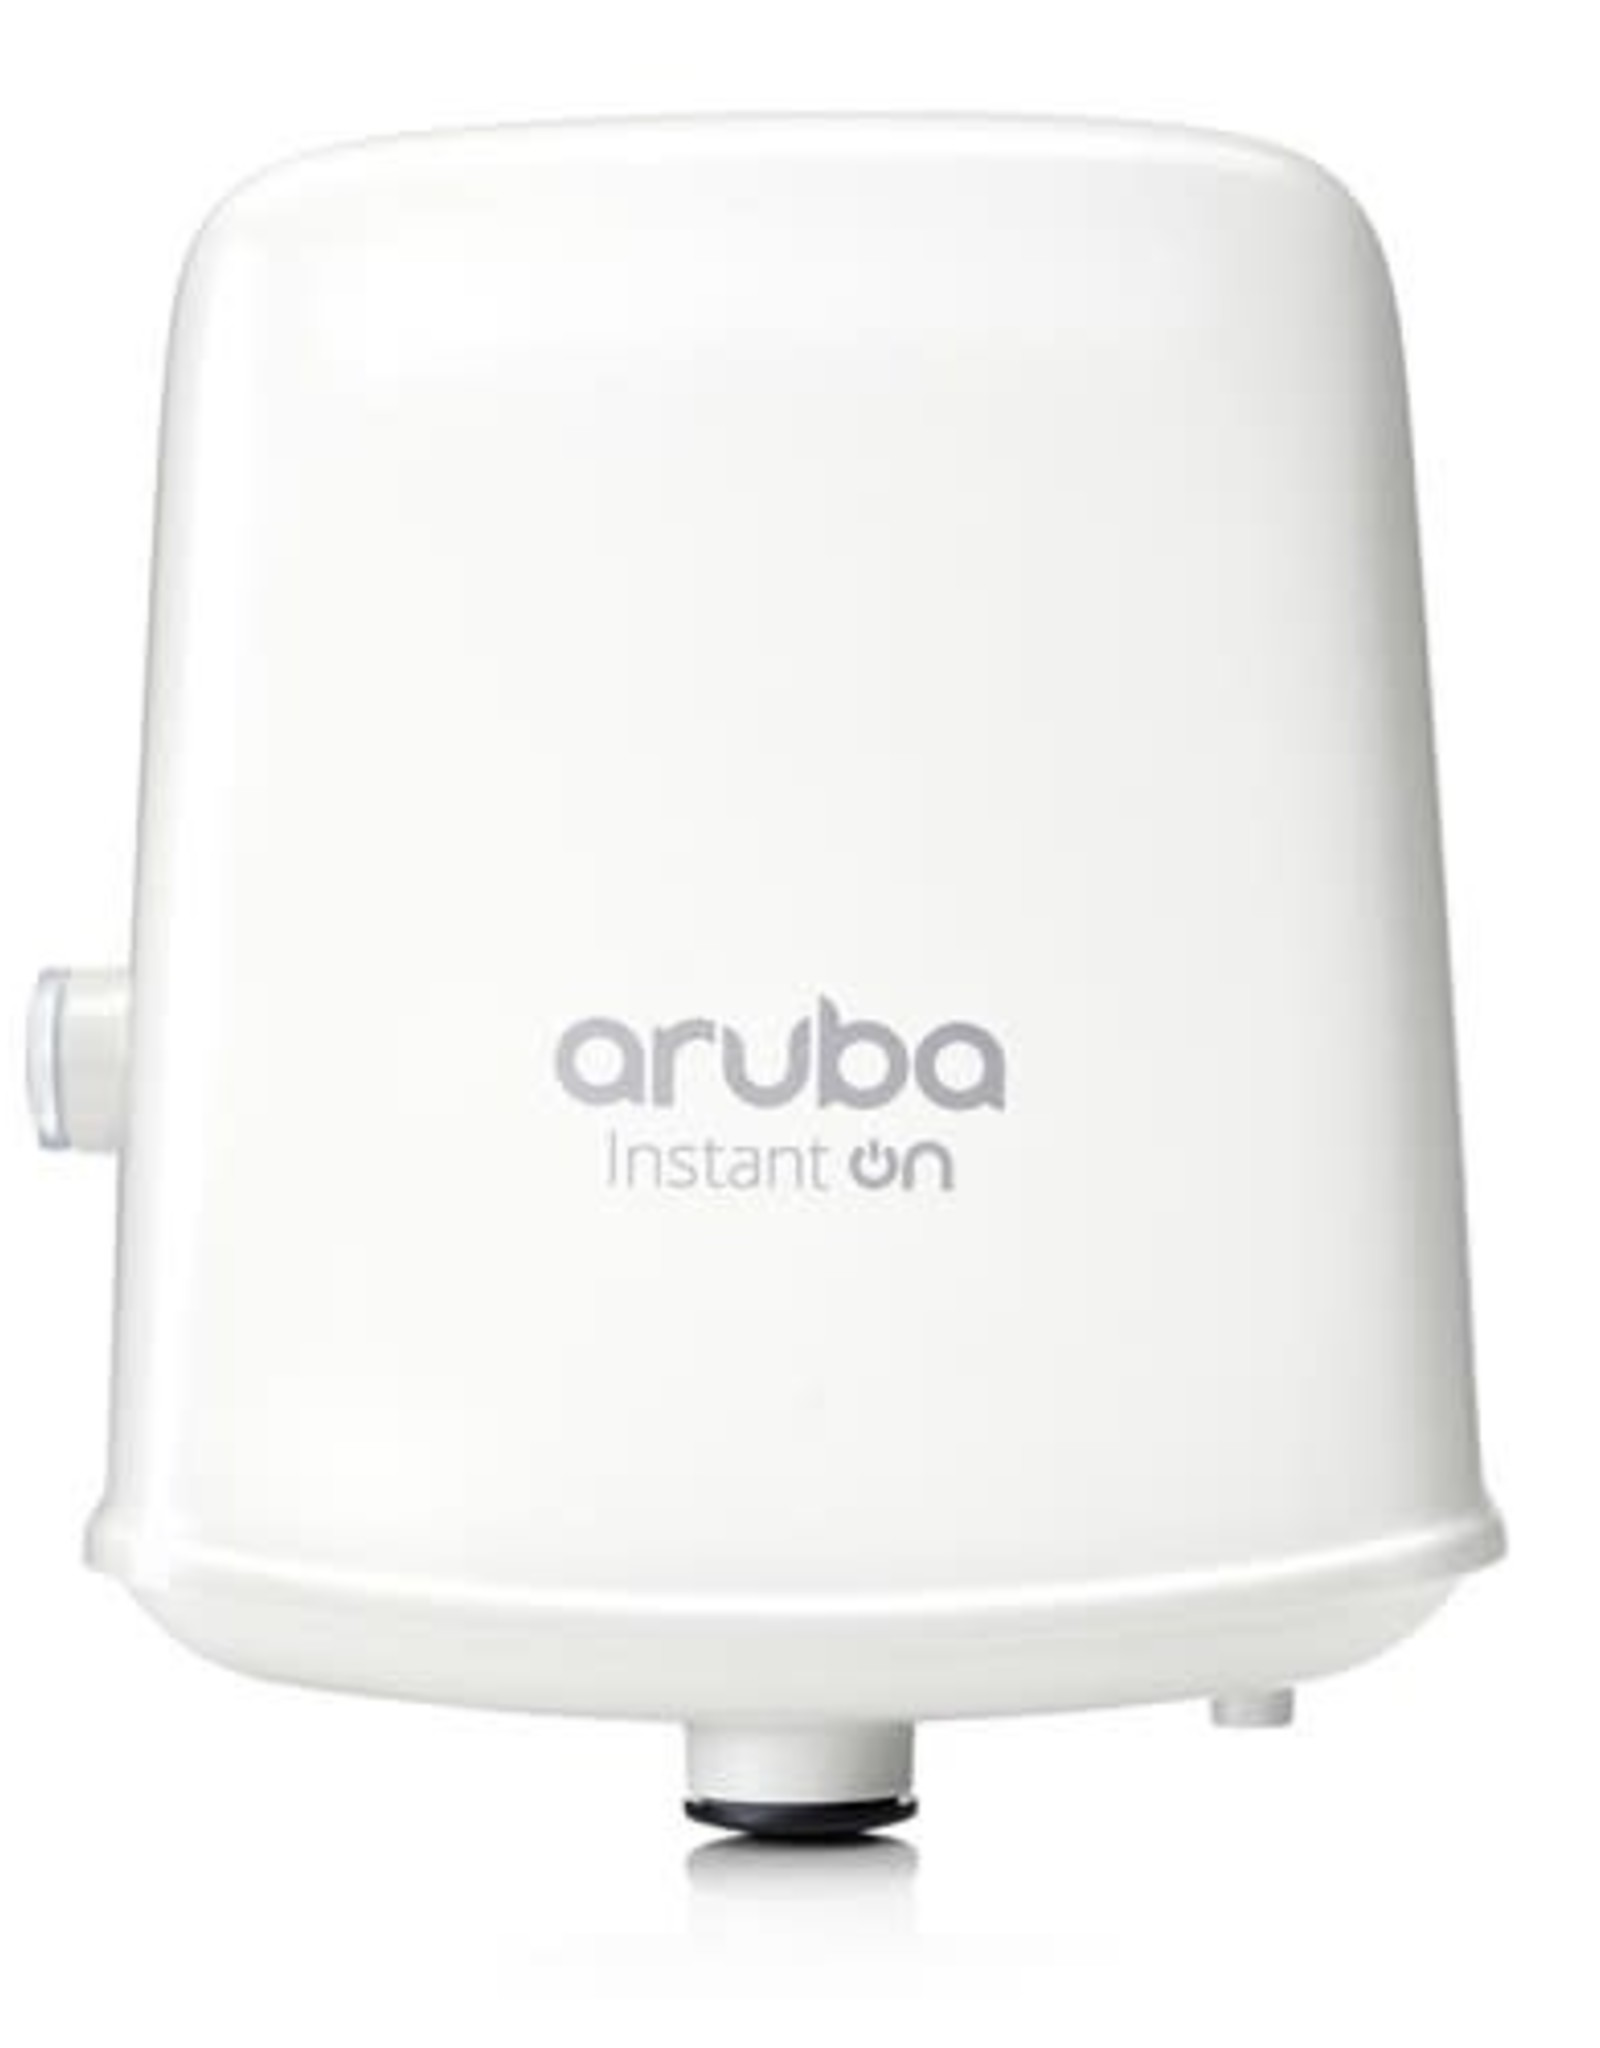 HPE ARUBA INSTANT ON AP17 (RW) - Outdoor WIRELESS ACCESS POINT R2X11A